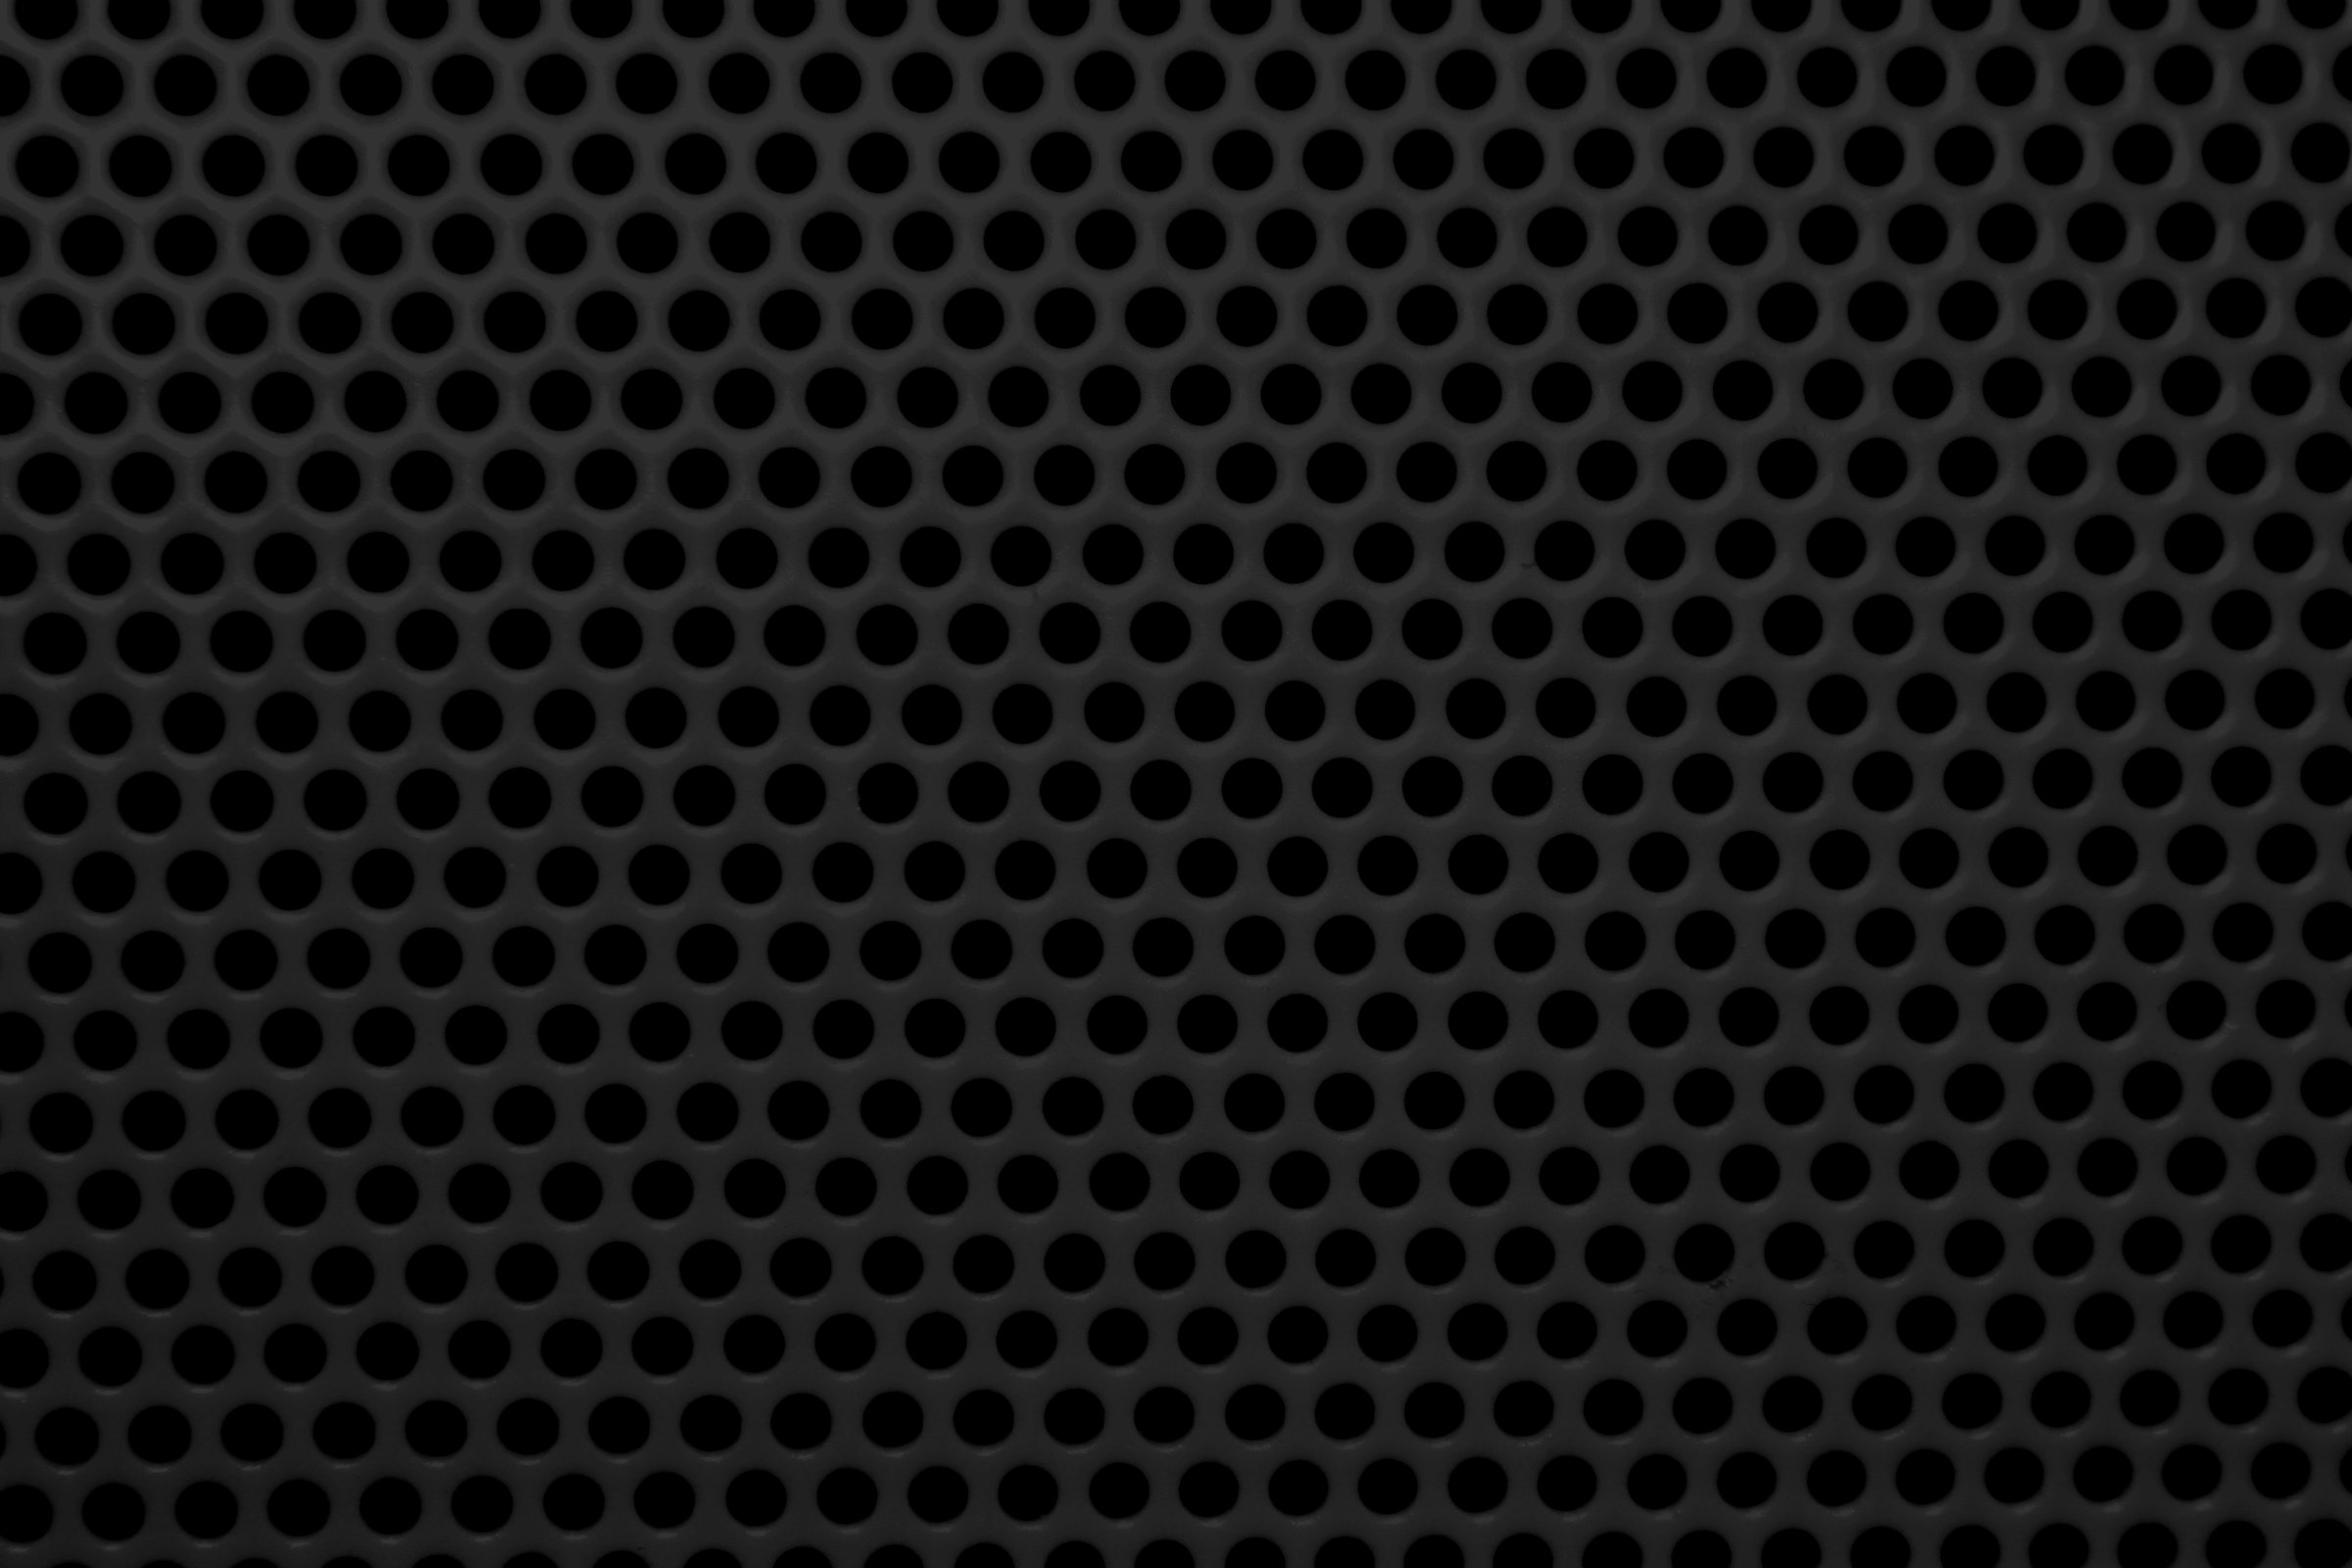 Black Mesh with Round Holes Texture Picture Photograph Photos 2400x1600